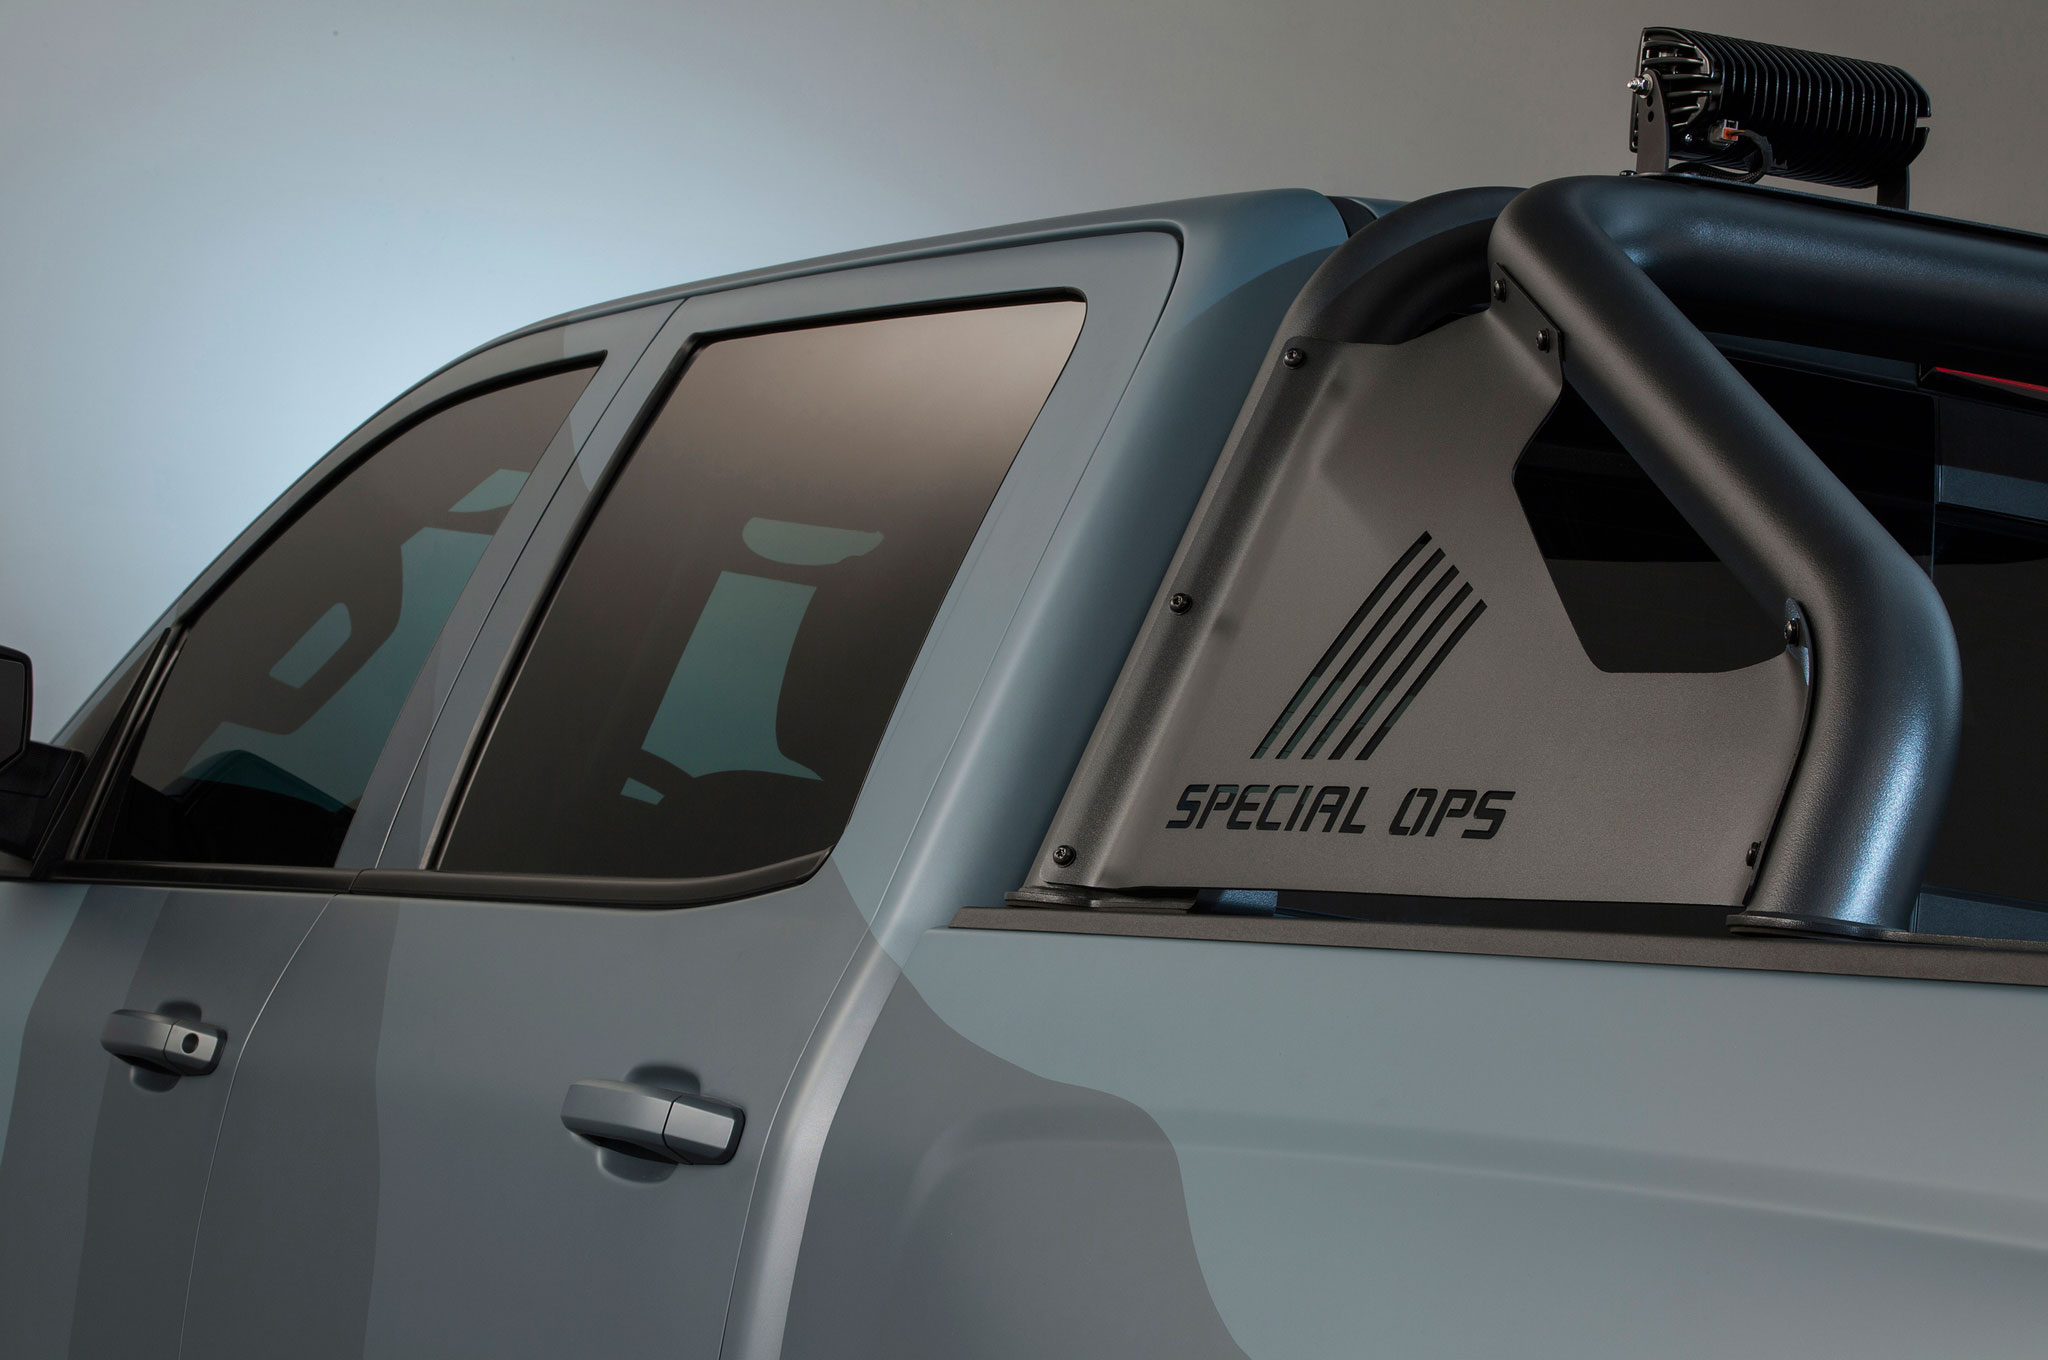 Chevrolet Silverado Special Ops Headed To Production